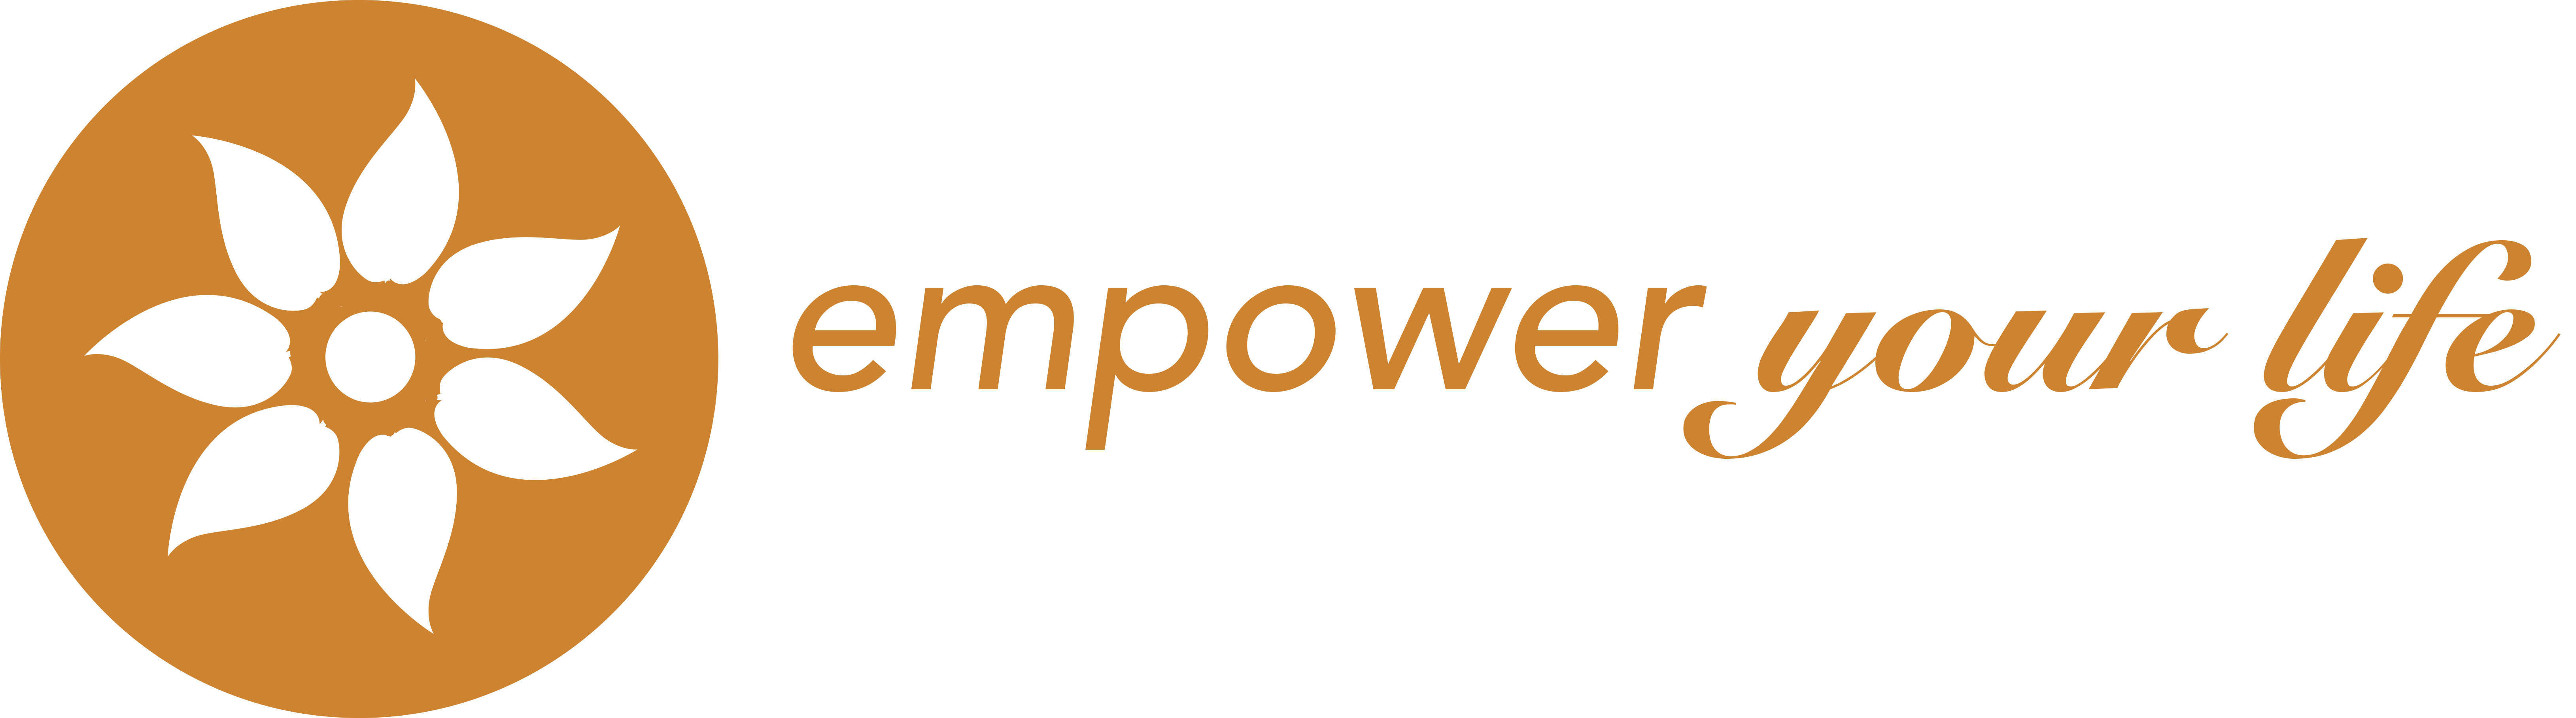 empower-mind logo